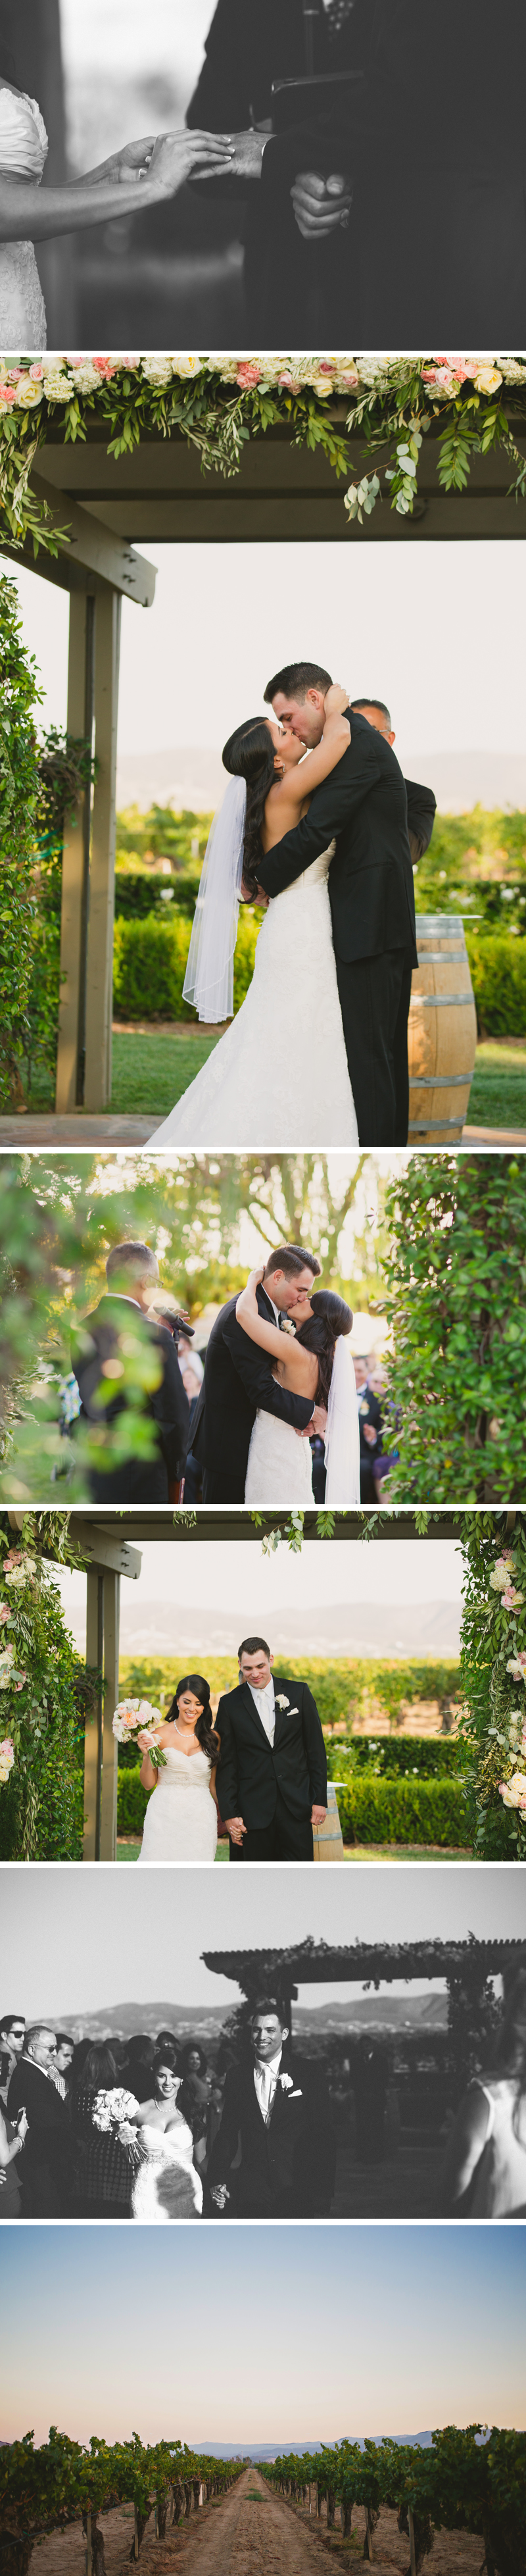 ponte-wedding-photos10